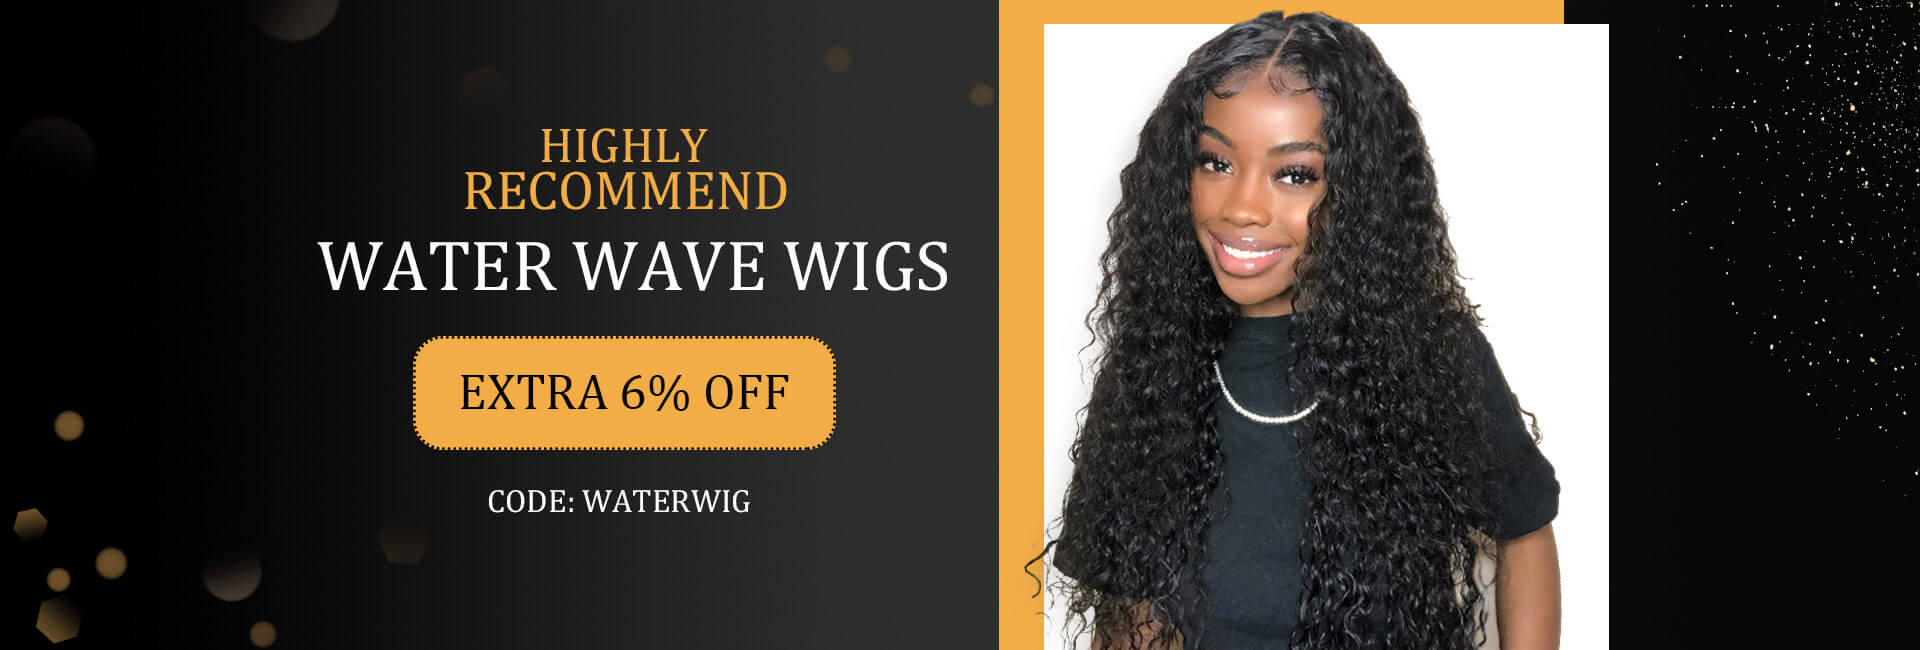 highly recommend water wave lace wigs